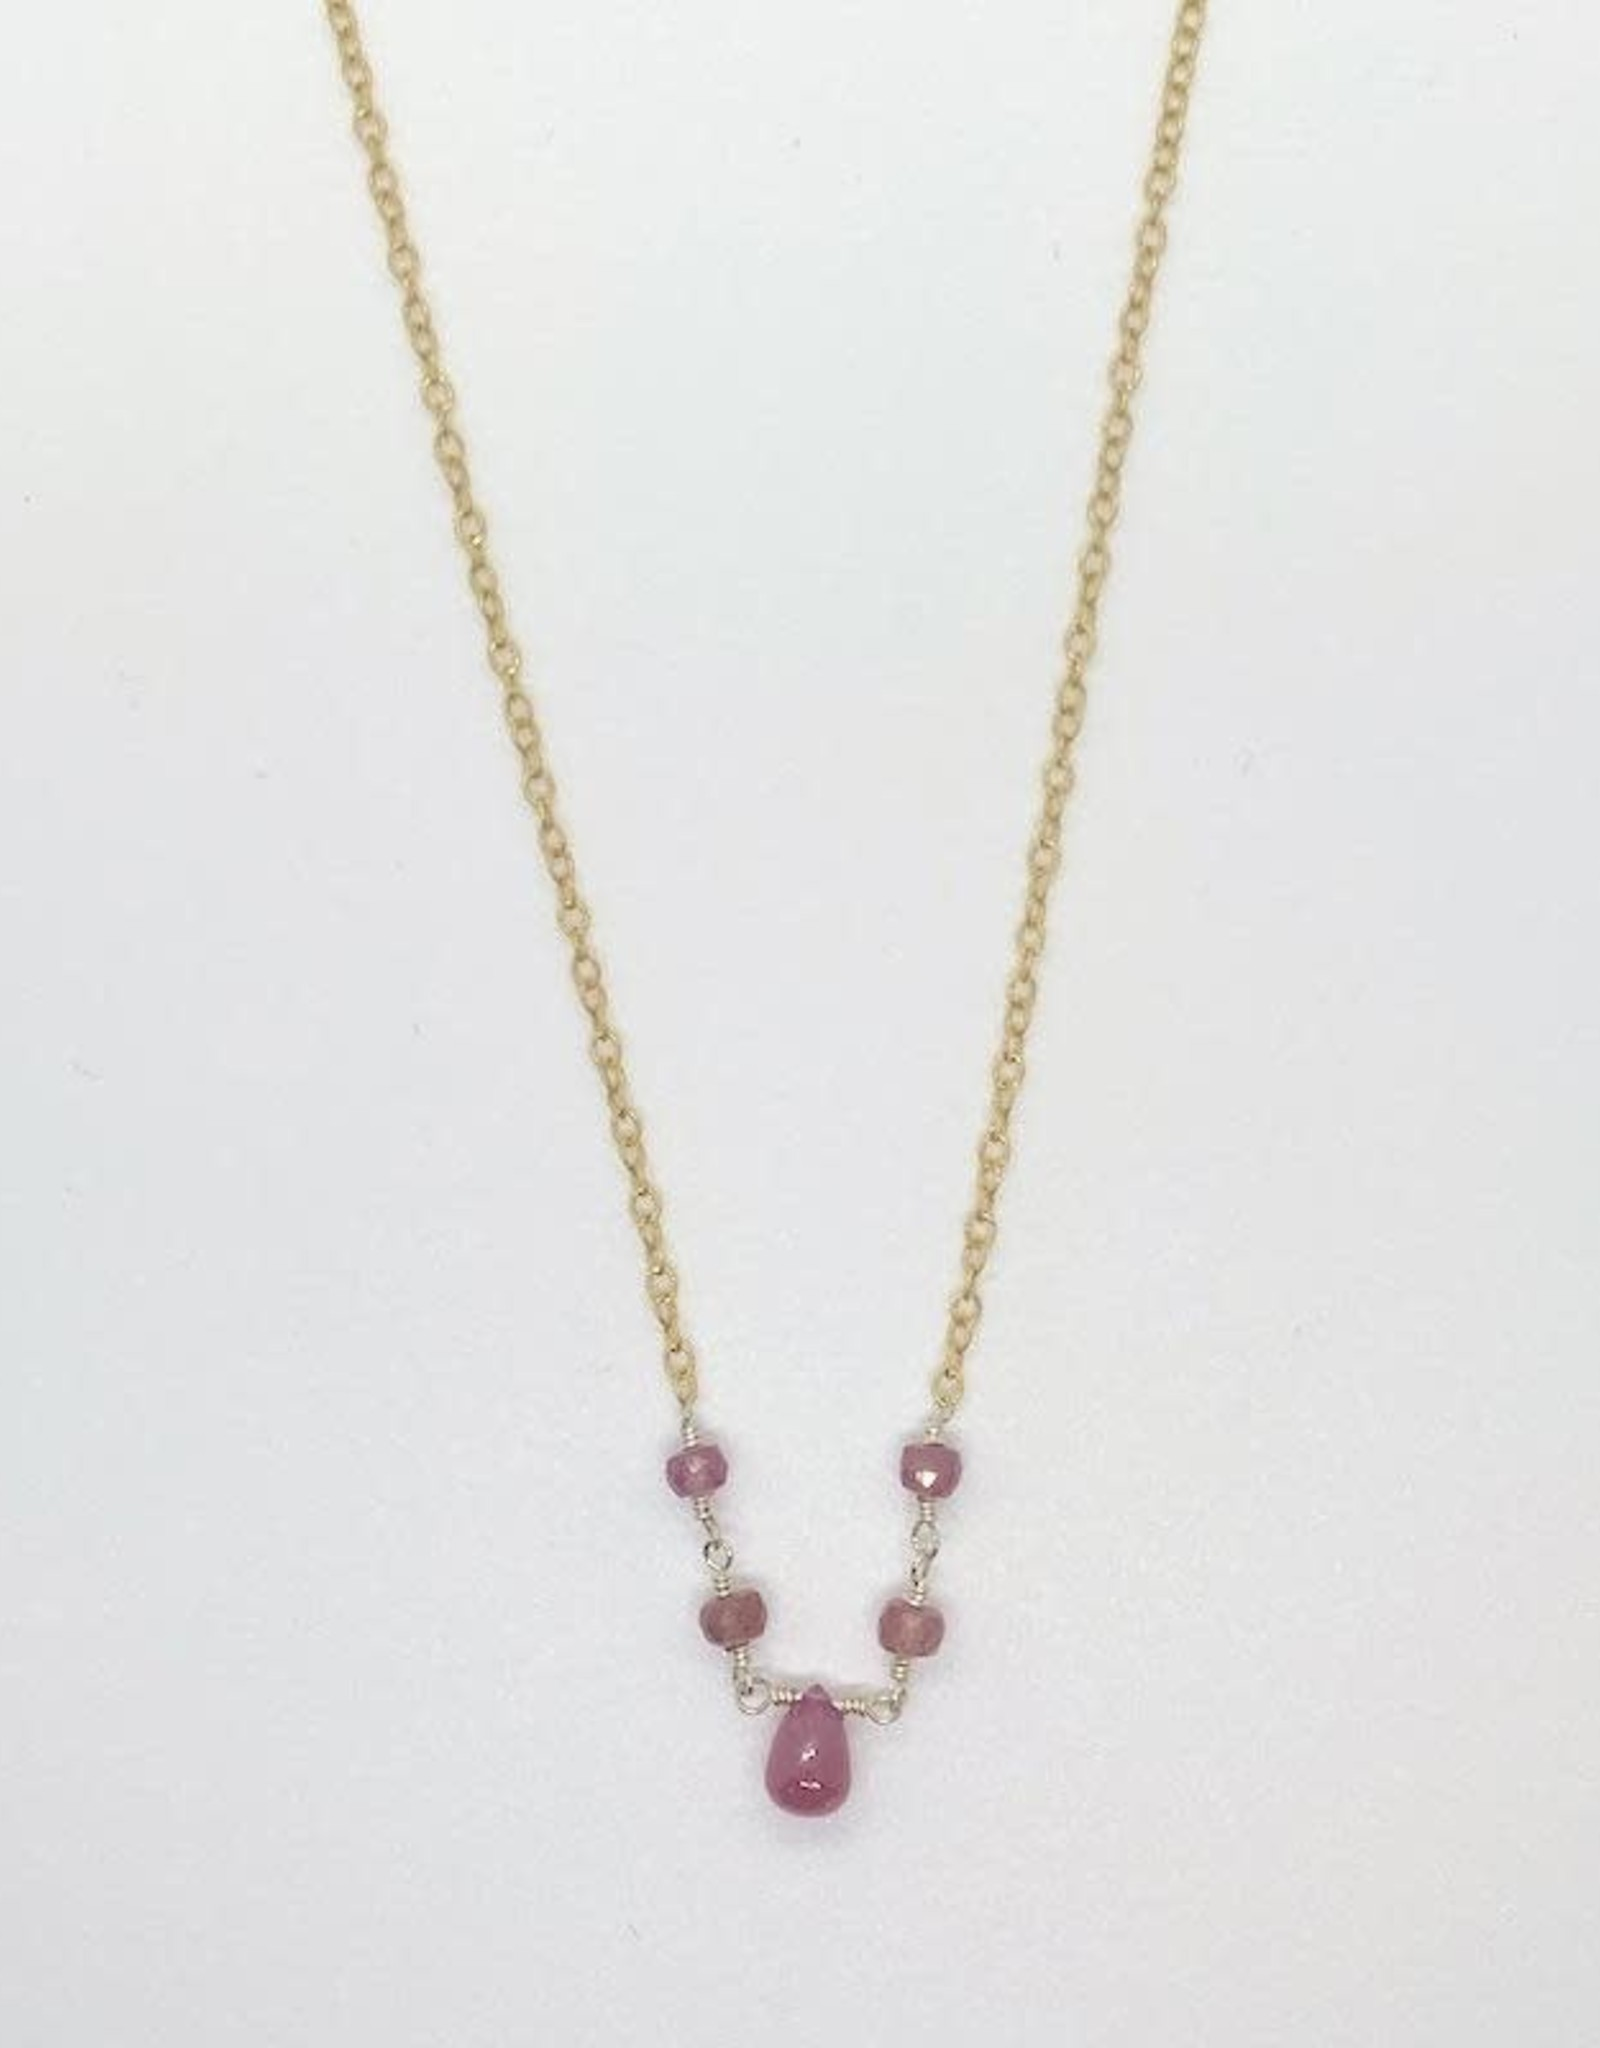 Handmade Silver Necklace with 4 ruby rondelles, 1 briolette connected, shiny wire, textured 14 k g.f. chain